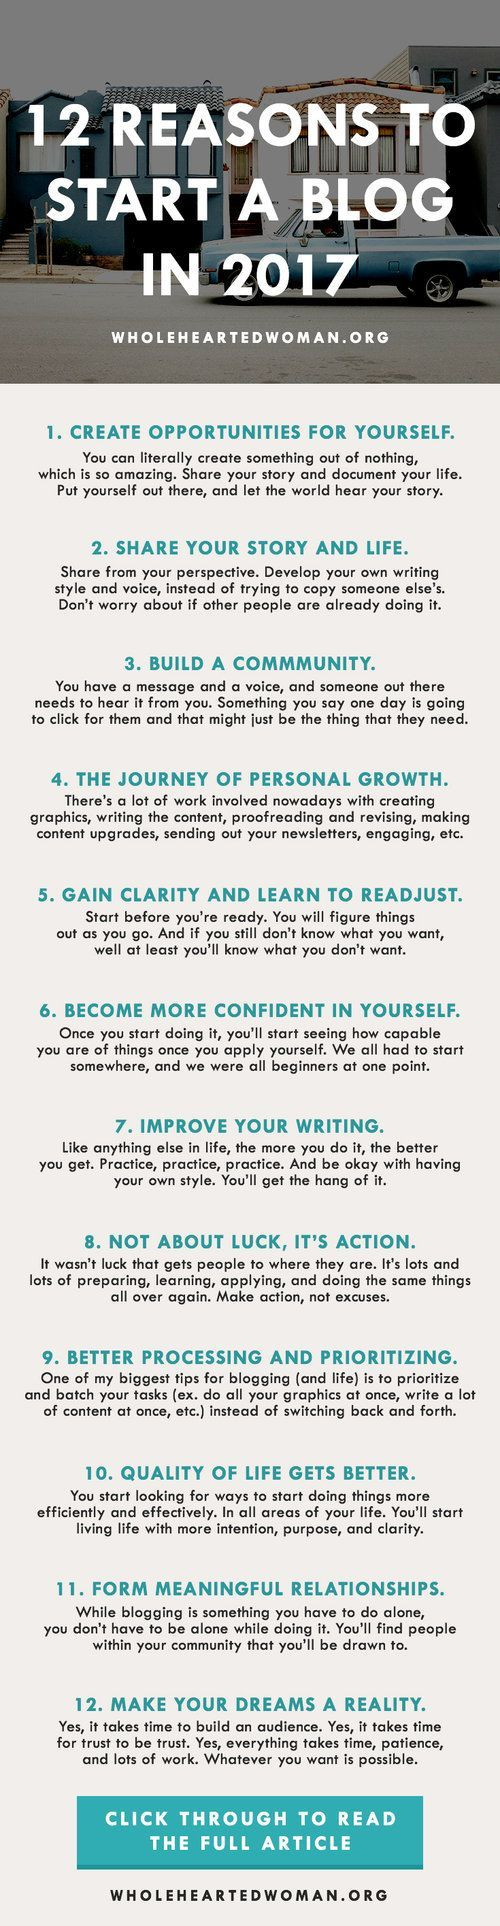 12 Reasons To Start A Blog In 2017   How To Start A Blog   Why You Should Blog   How Blogging Can Help You   Personal Growth And Development Blog   Self-Discovery   Lifestyle   Blogging In 2017   How To Create Your Own Opportunities In Life   How To Improve Your Life